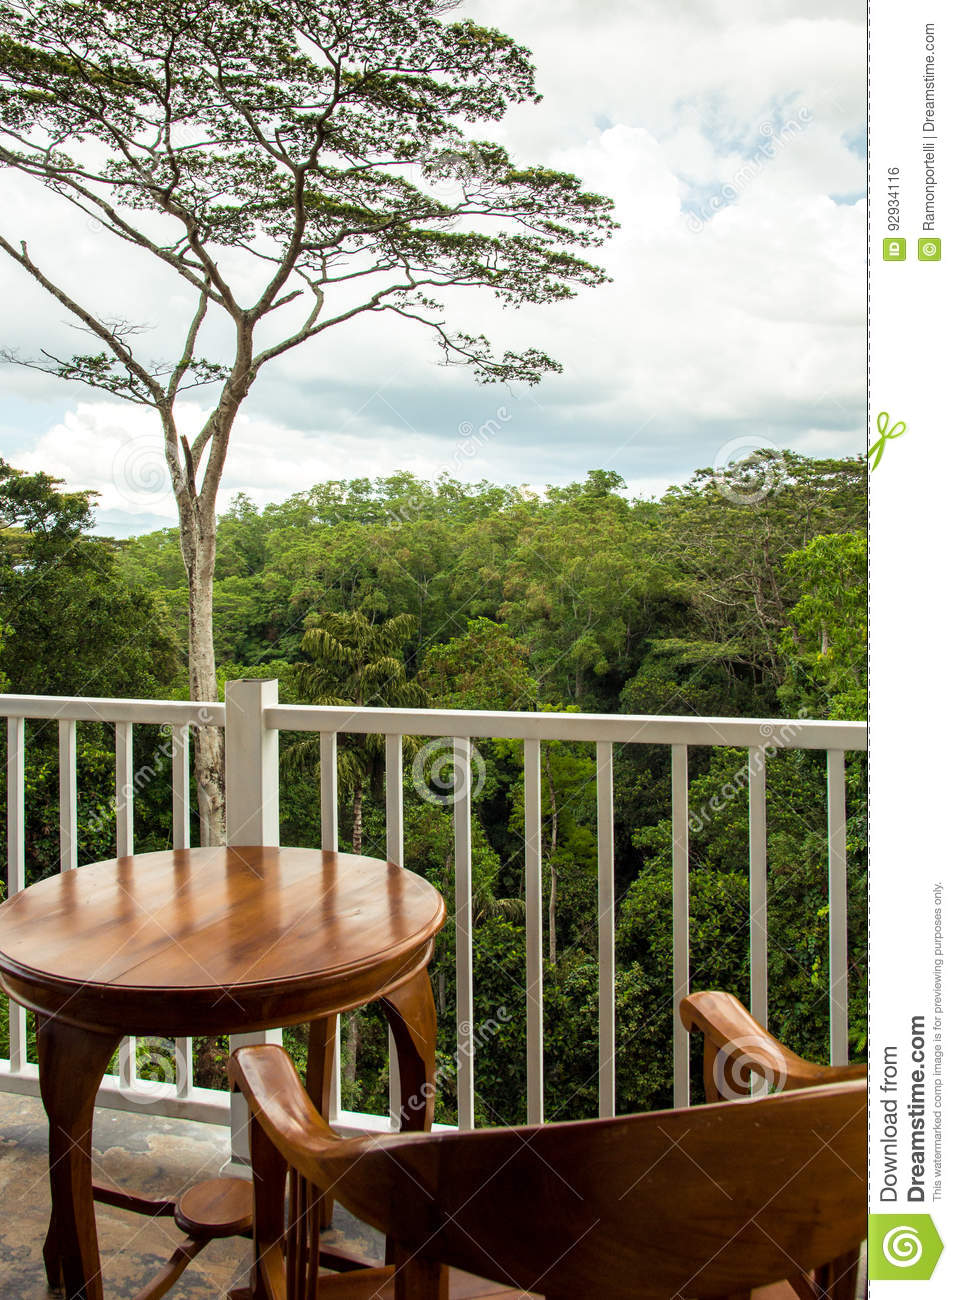 Wooden Chair And Table For 1 Person In A Balcony Overlooking A F